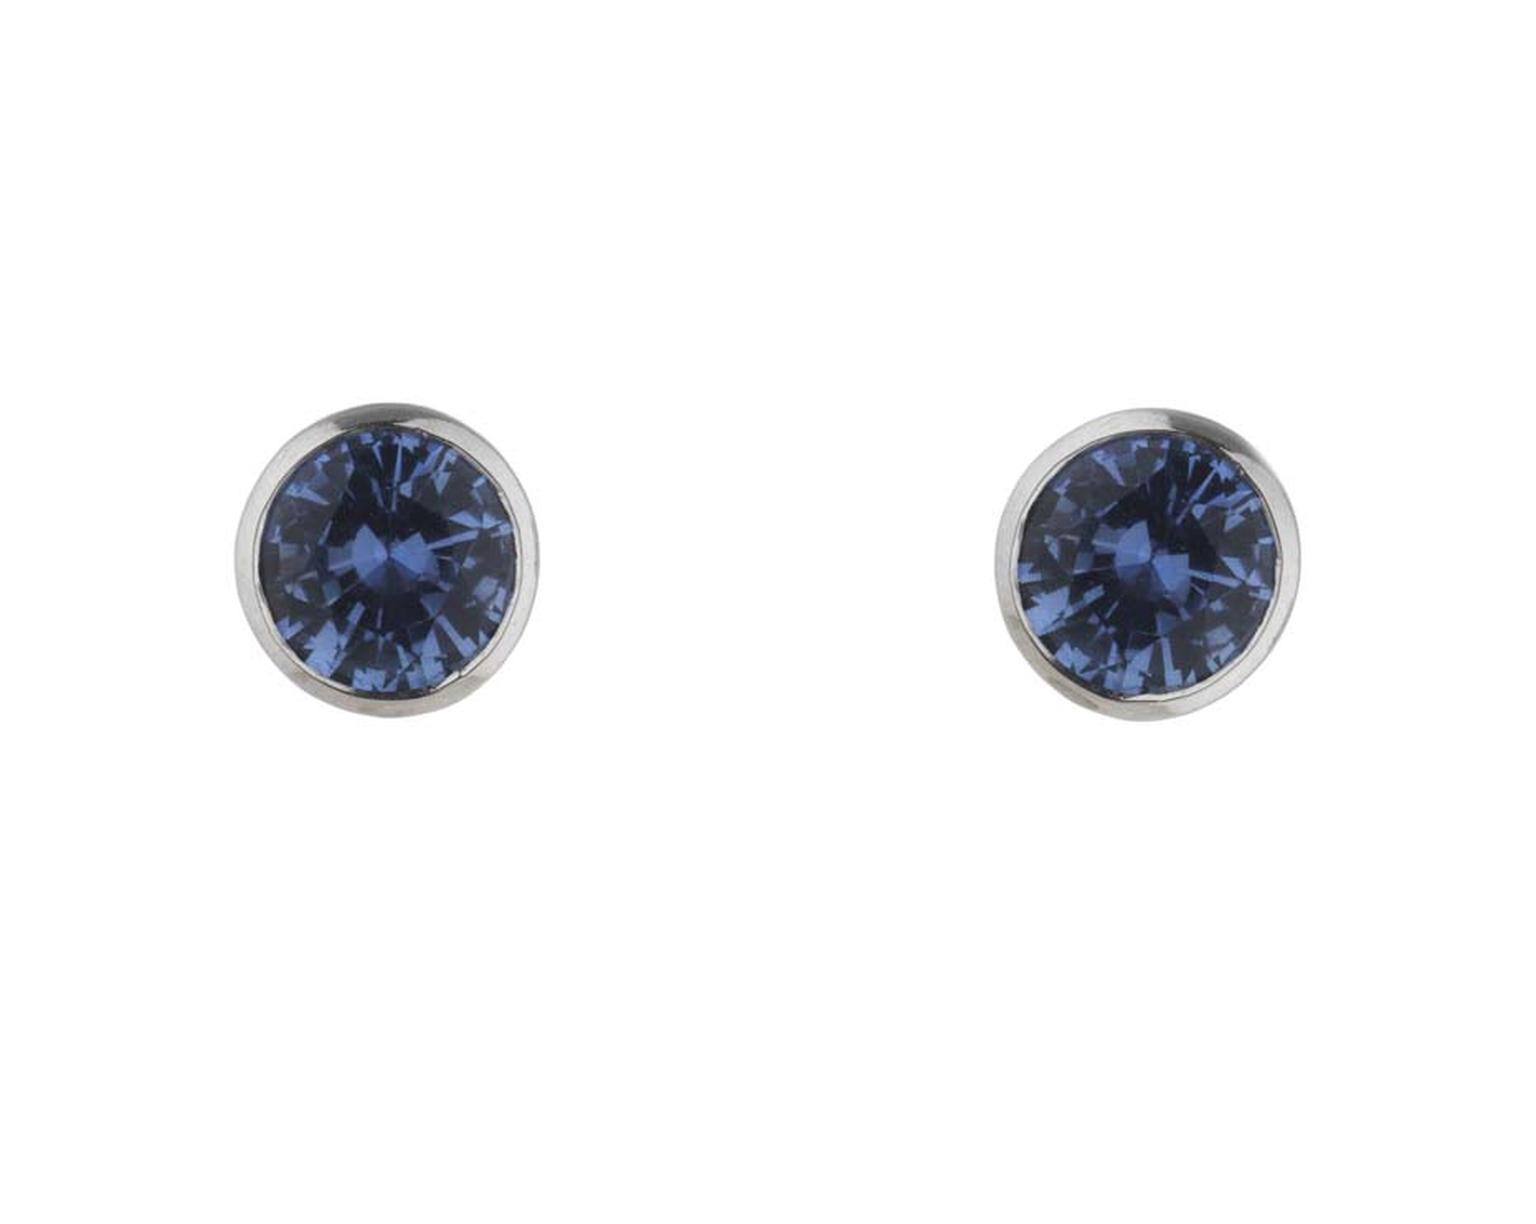 Holts London jewellery collection interchangeable Regent earrings with sapphire stud centres that can also include surrounding diamonds and rutilated quartz drops.